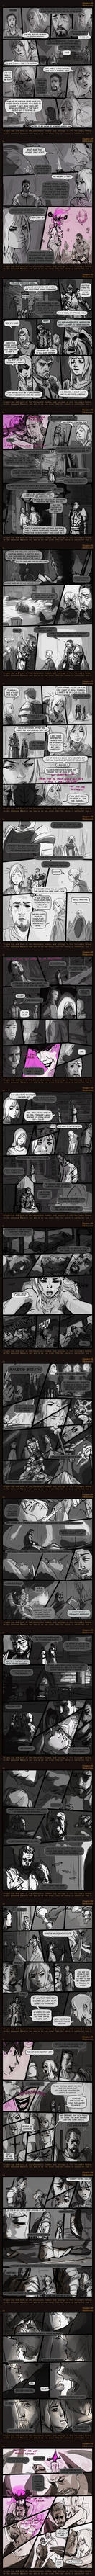 Second Chances ch09 p12 to 30 by chakhabit